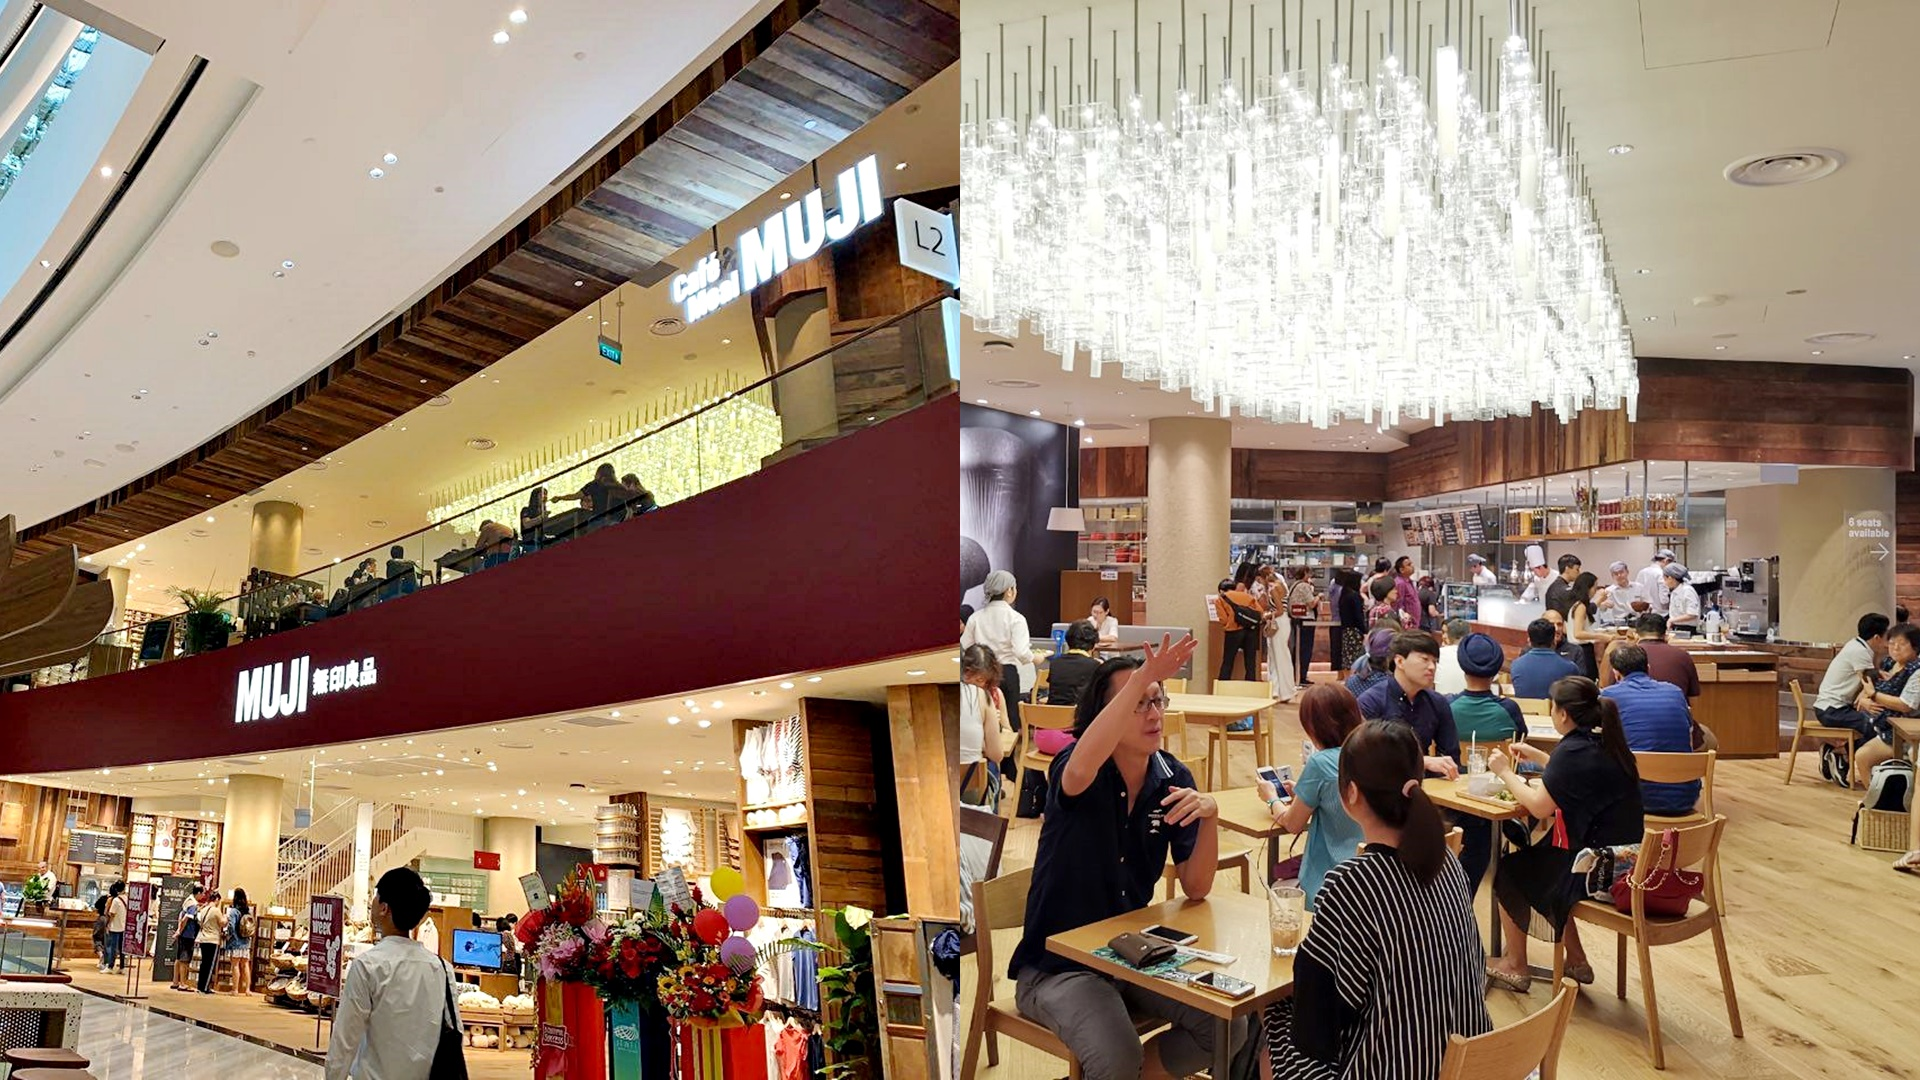 Muji_Jewel Changi Airport